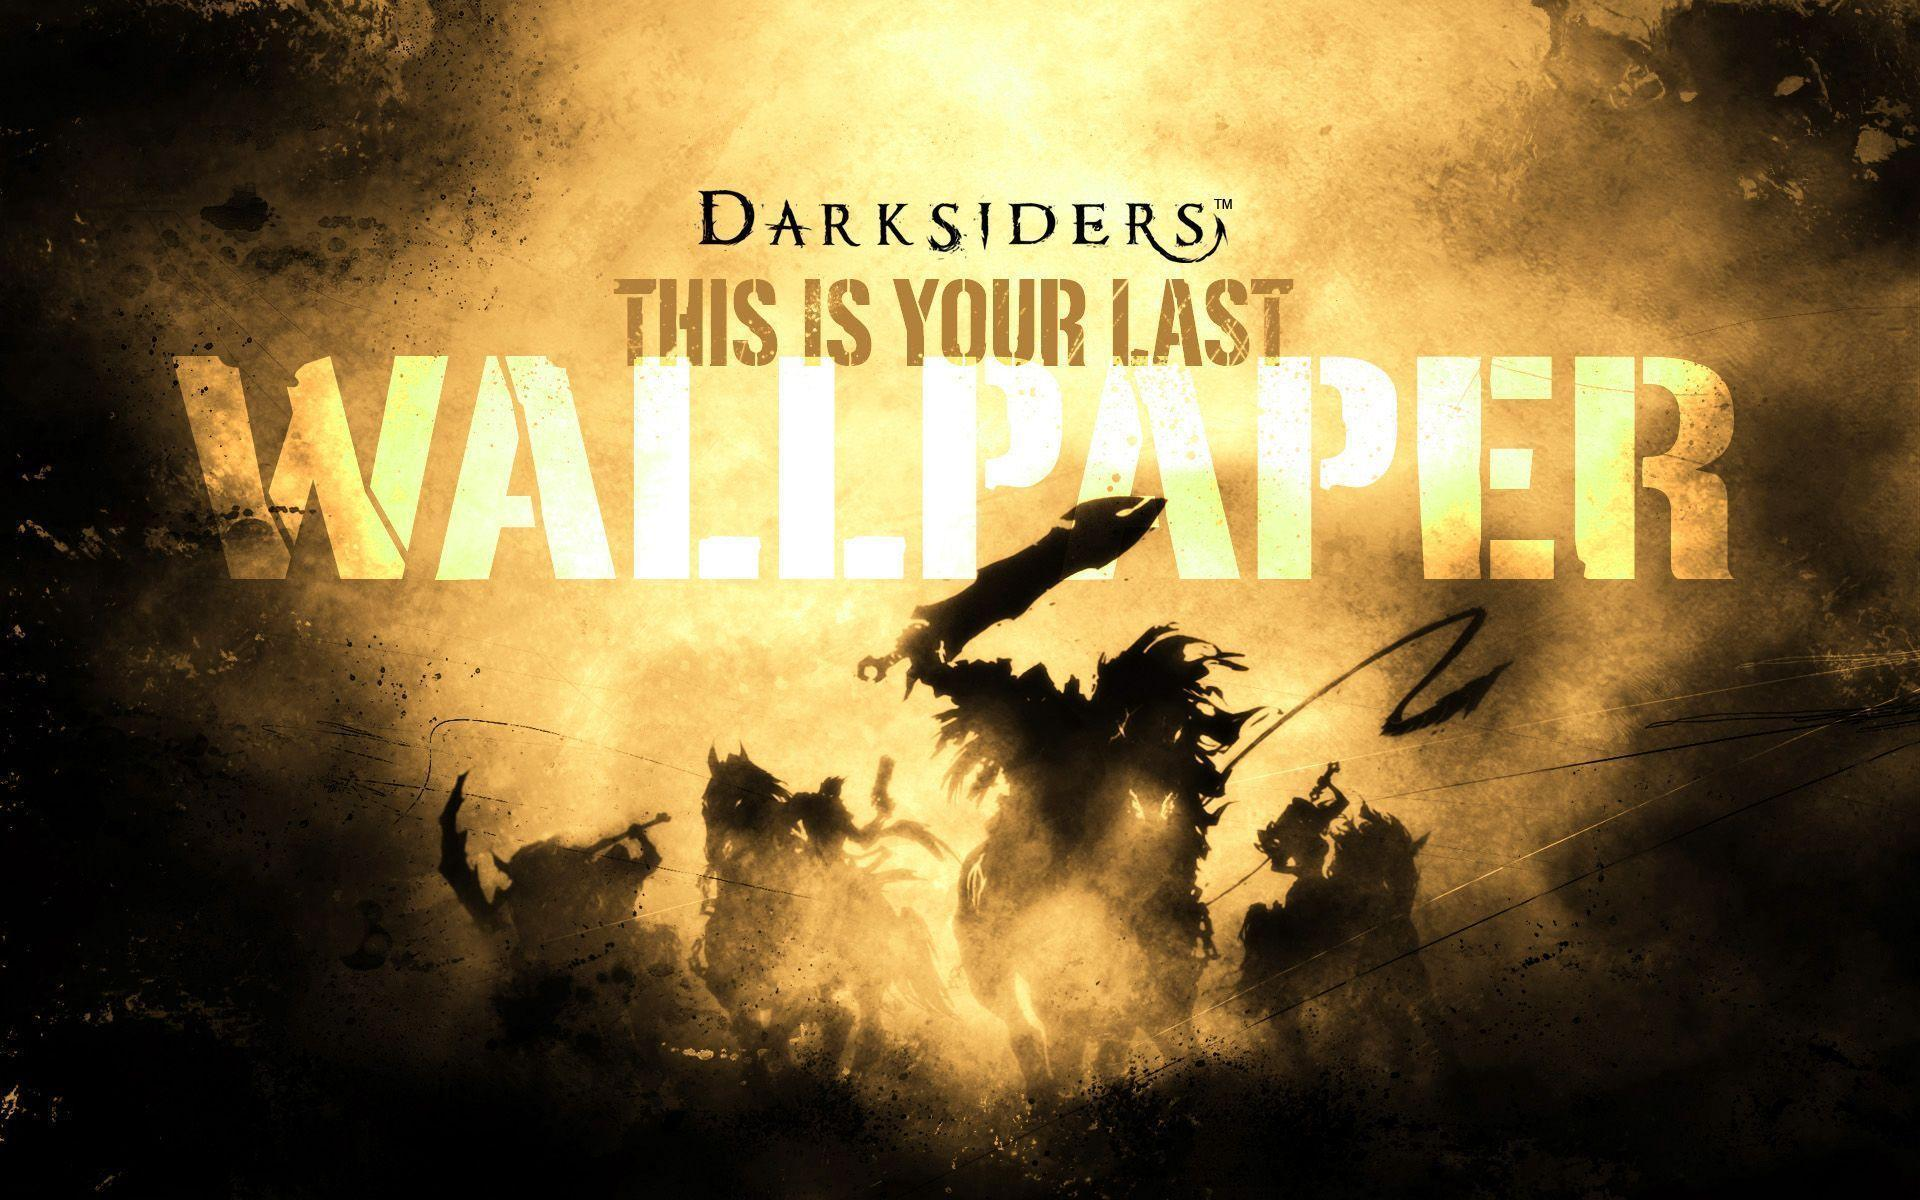 Watcher Darksiders